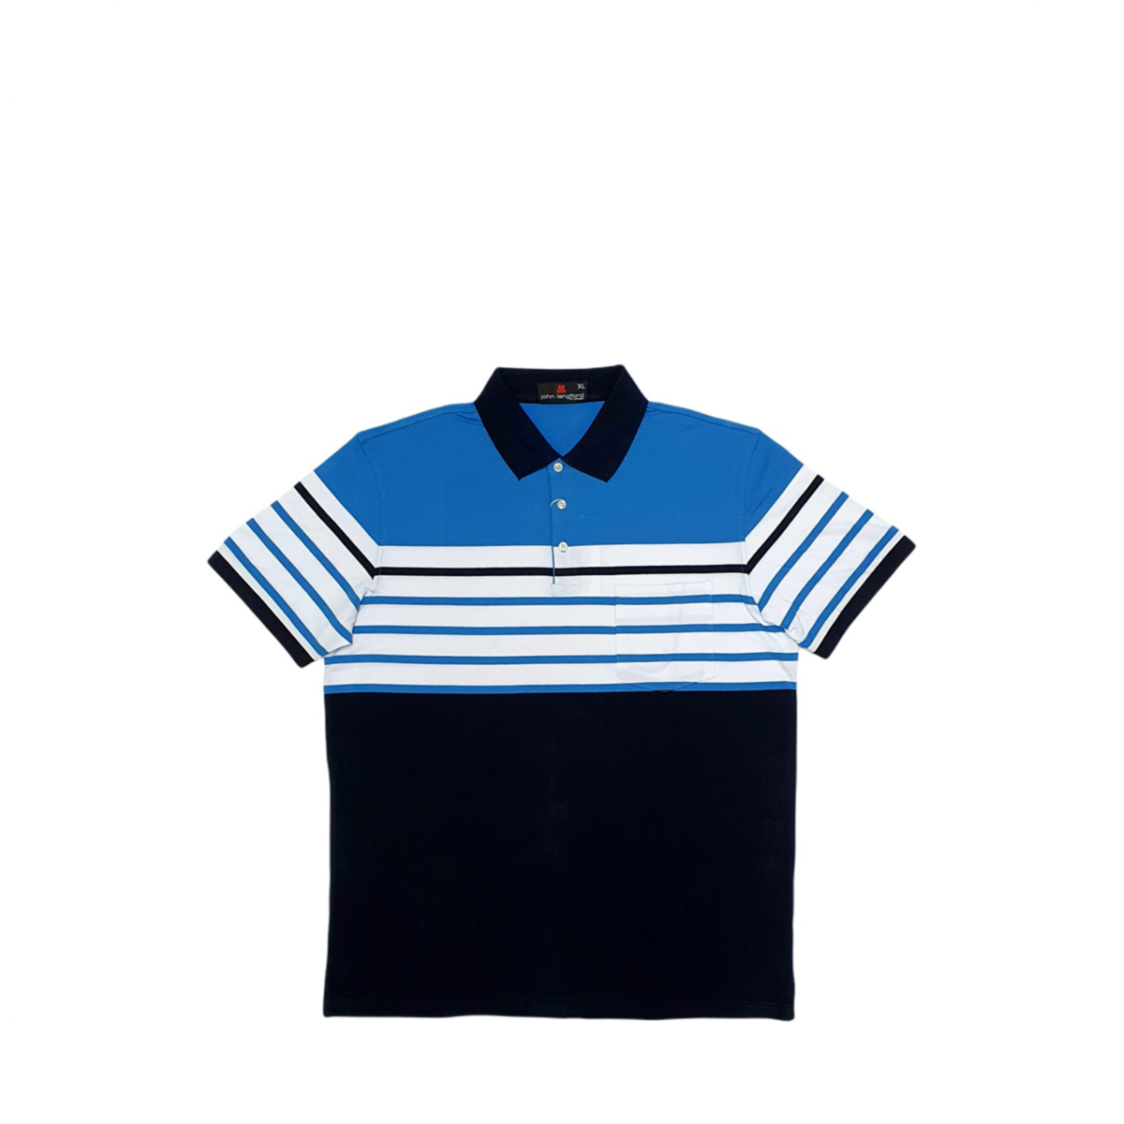 John Langford Stretchable Striped Polo T-Shirt with Pocket Blue